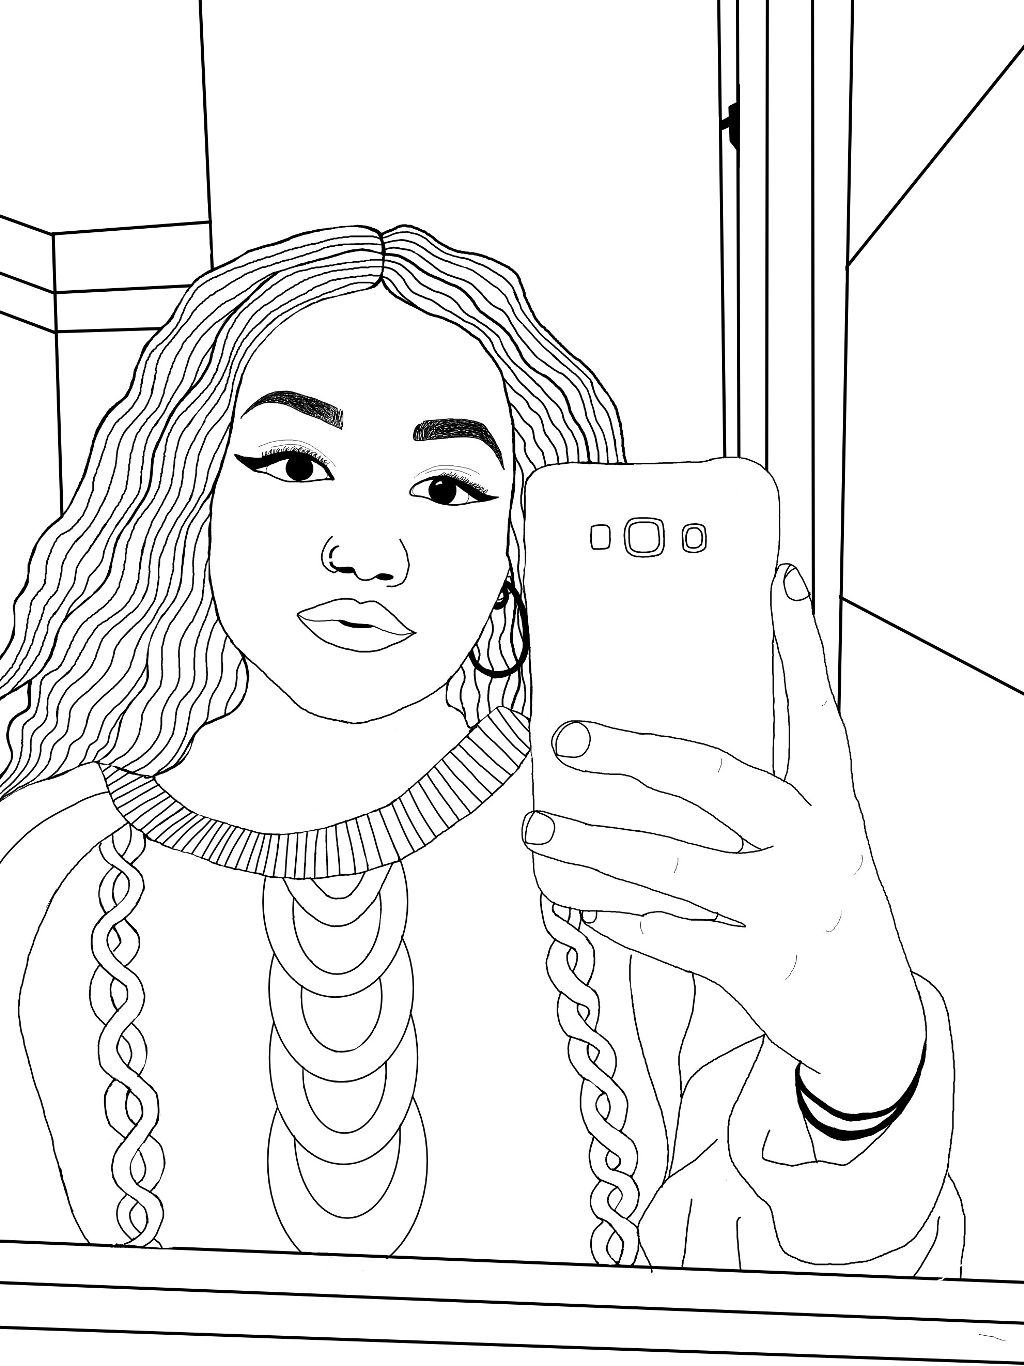 #outline #blackandwhite #me #myself #freetoedit  #girl #drawings #outilinedrawing